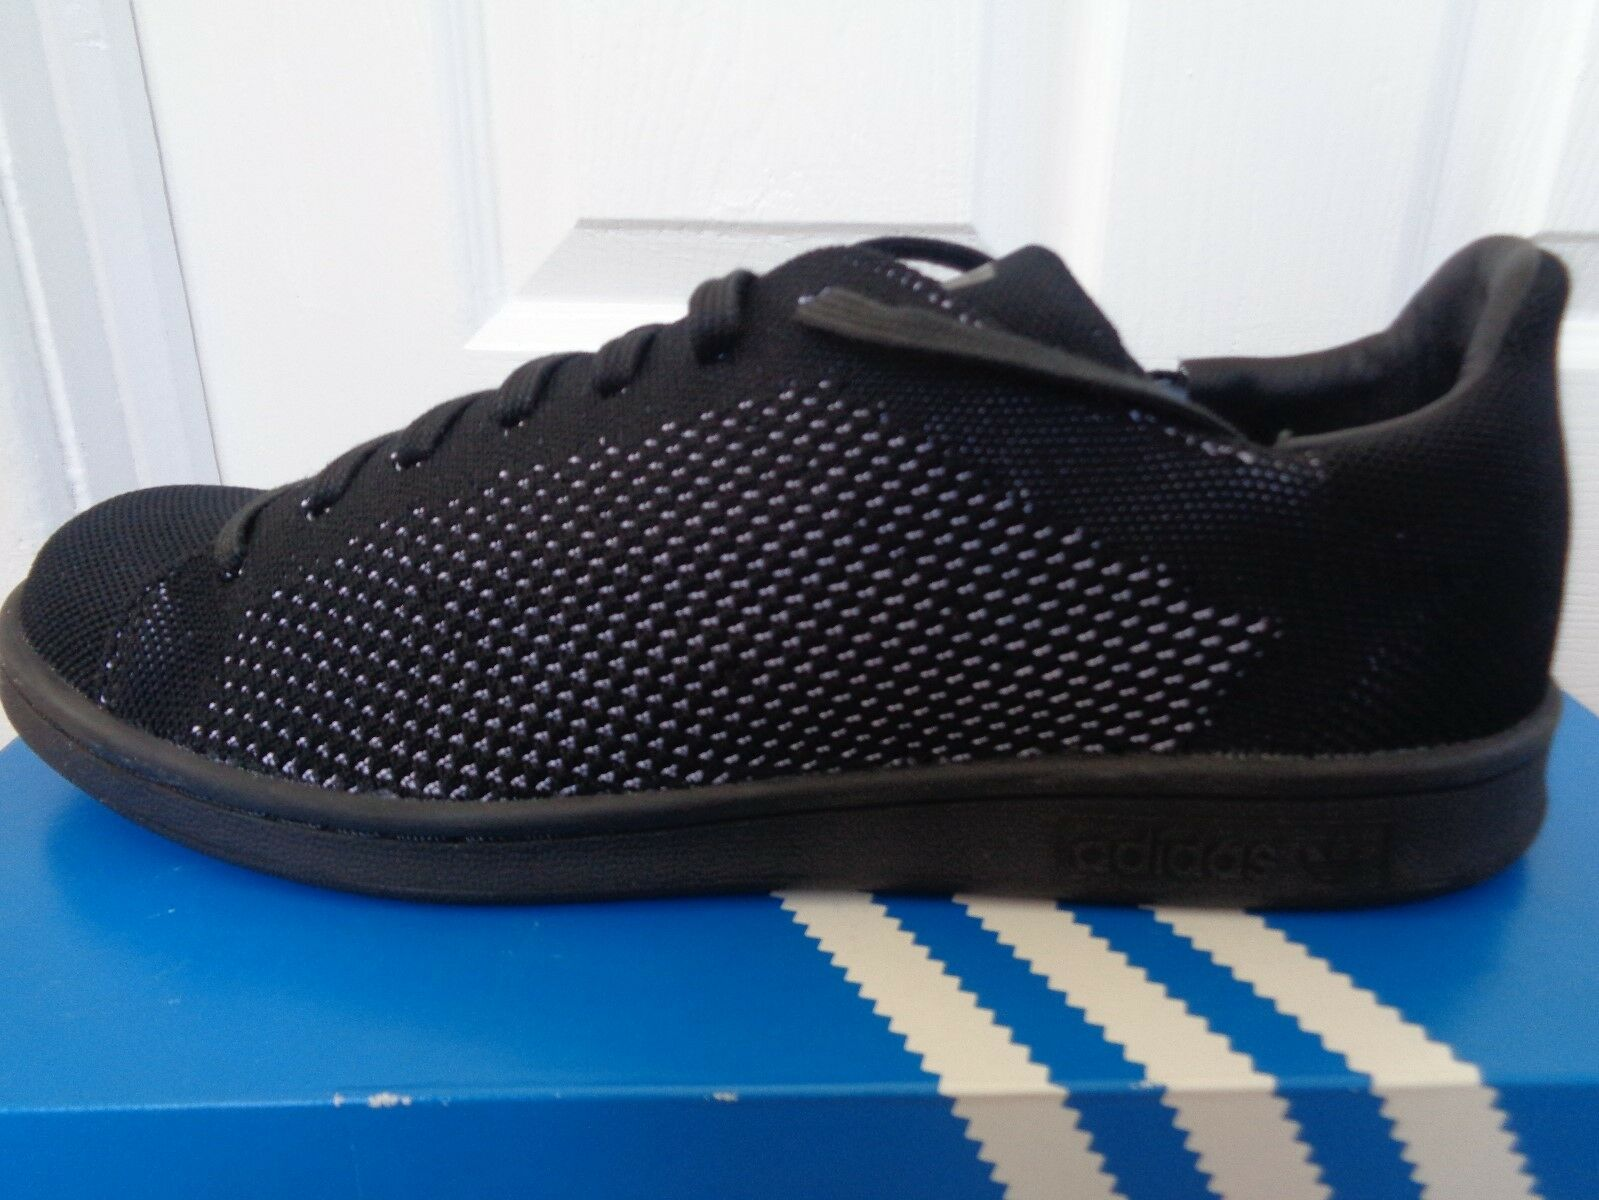 Adidas Chaussures Stan Smith Baskets Homme Baskets Chaussures Adidas S80065 US Neuf  Bote bd172d